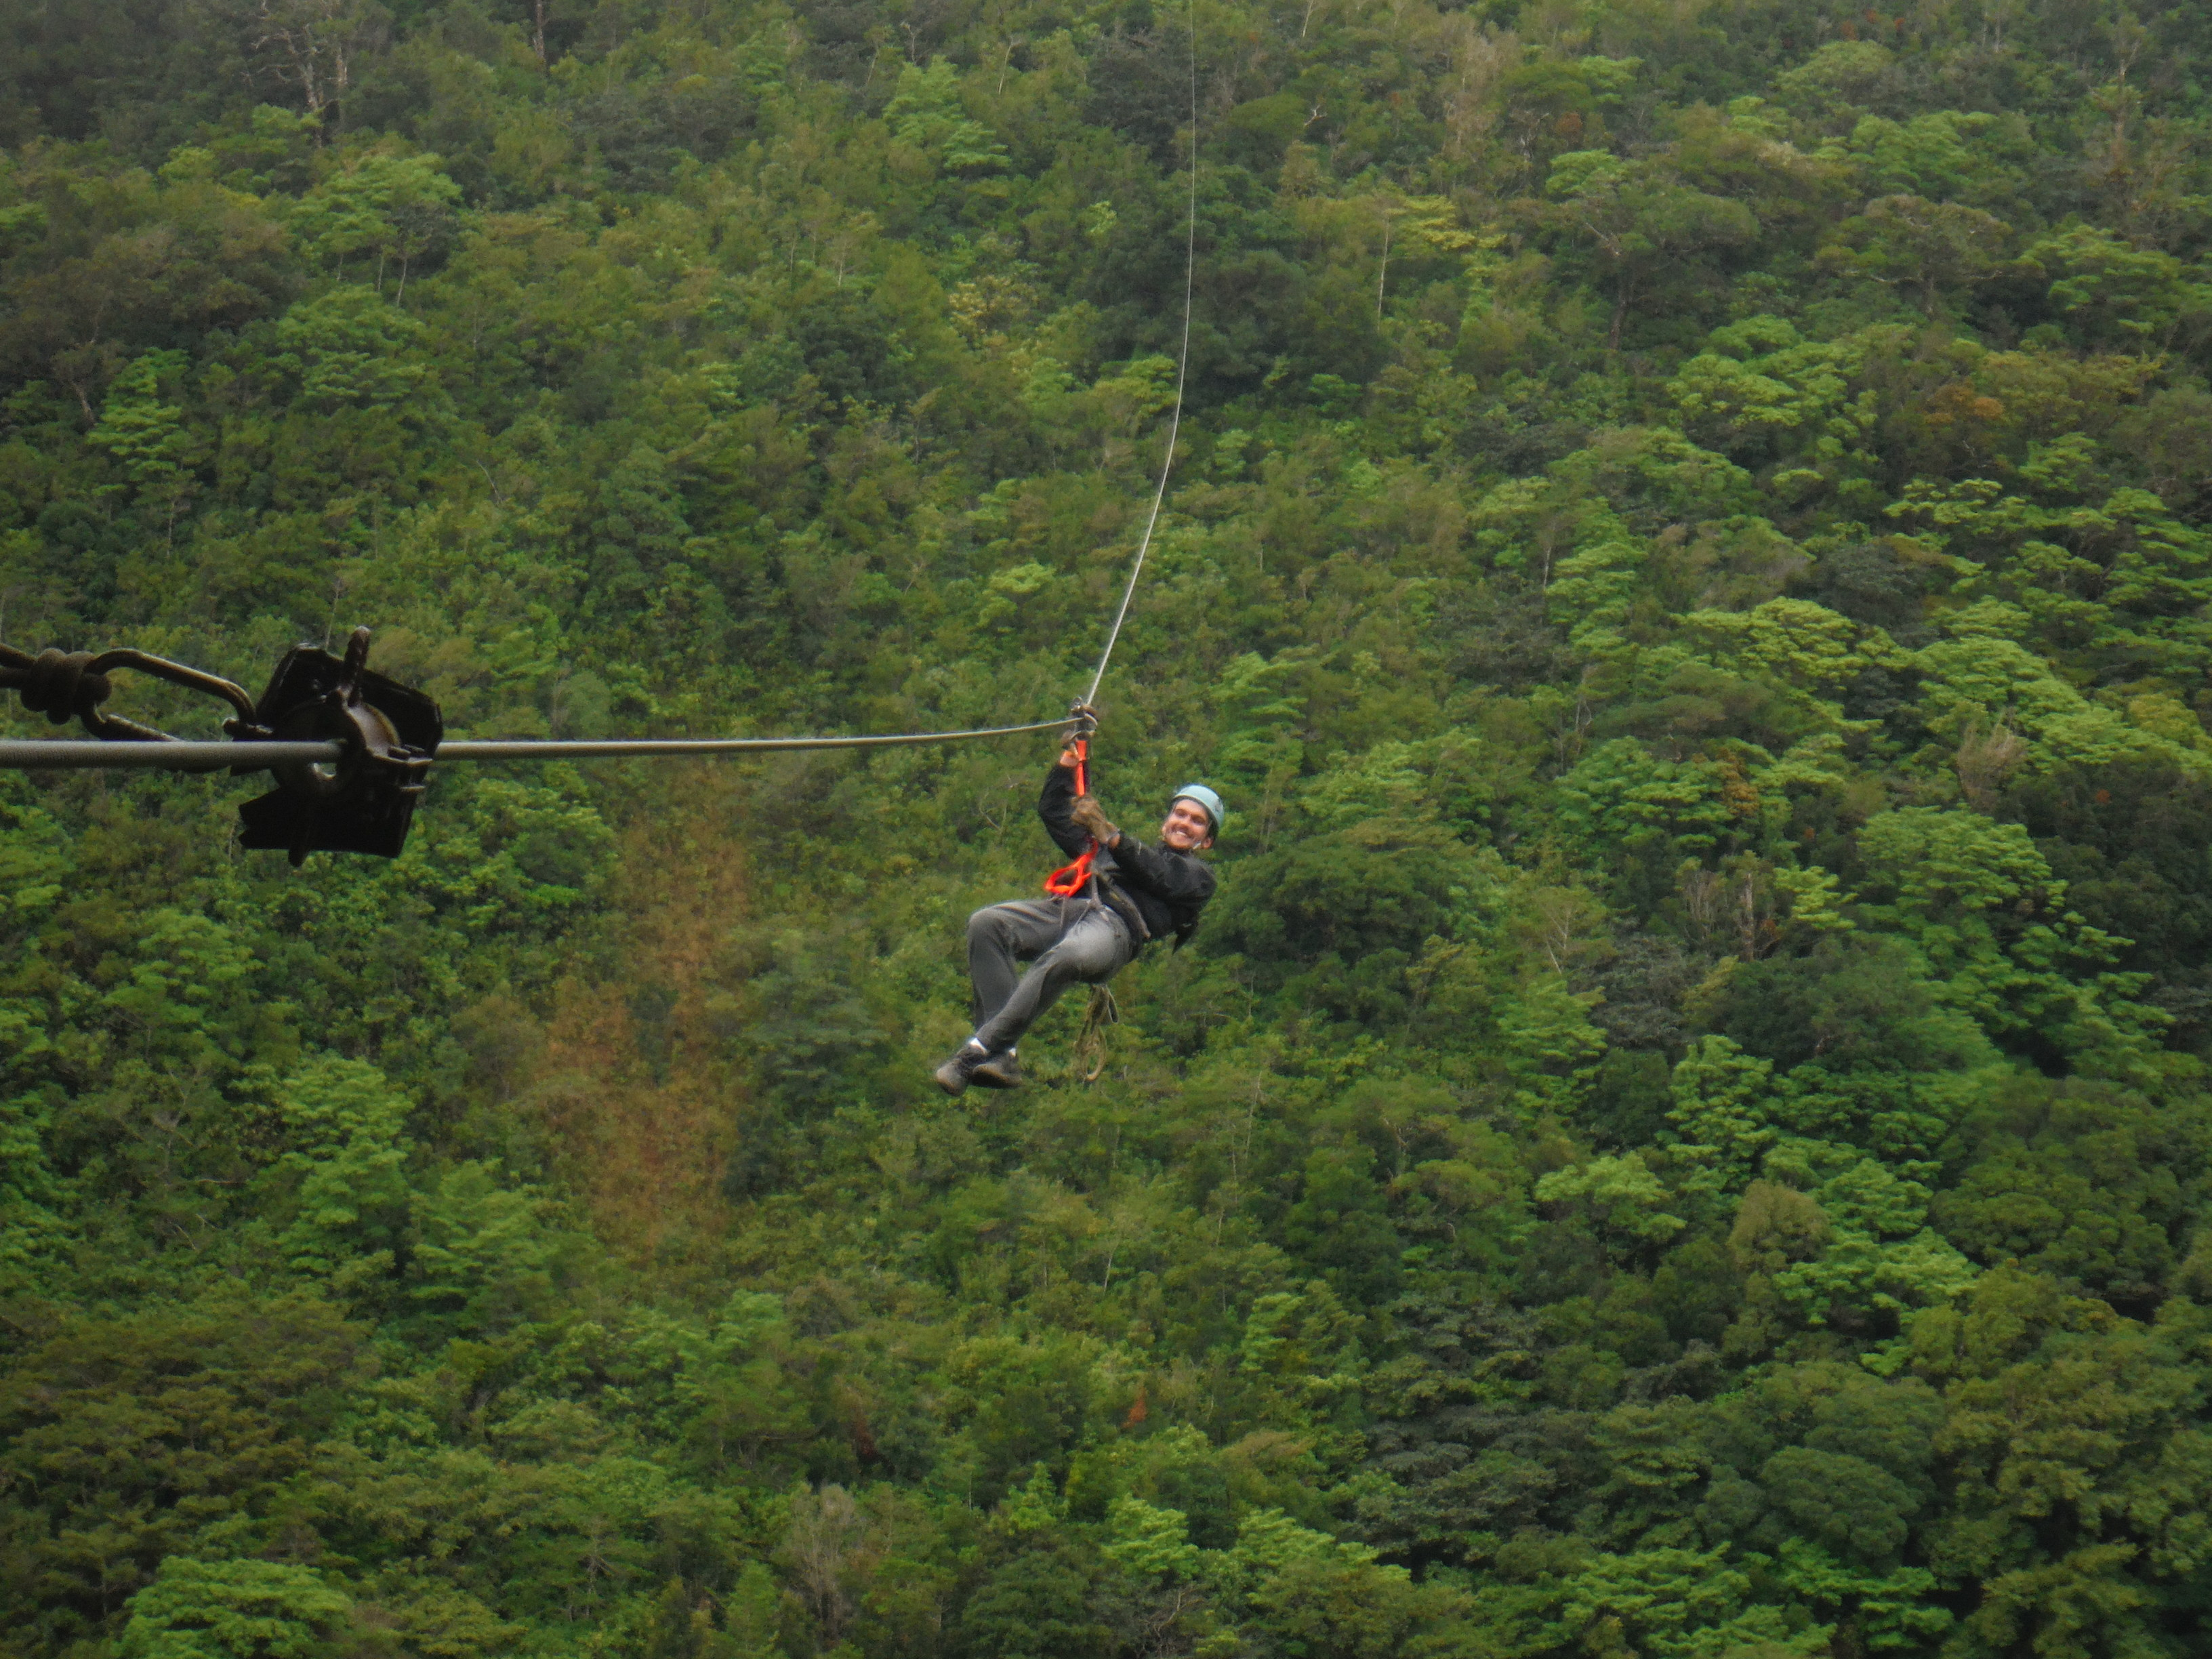 Monteverde Extremo zip line | Photo by Wilson Carletti (All Rights Reserved)